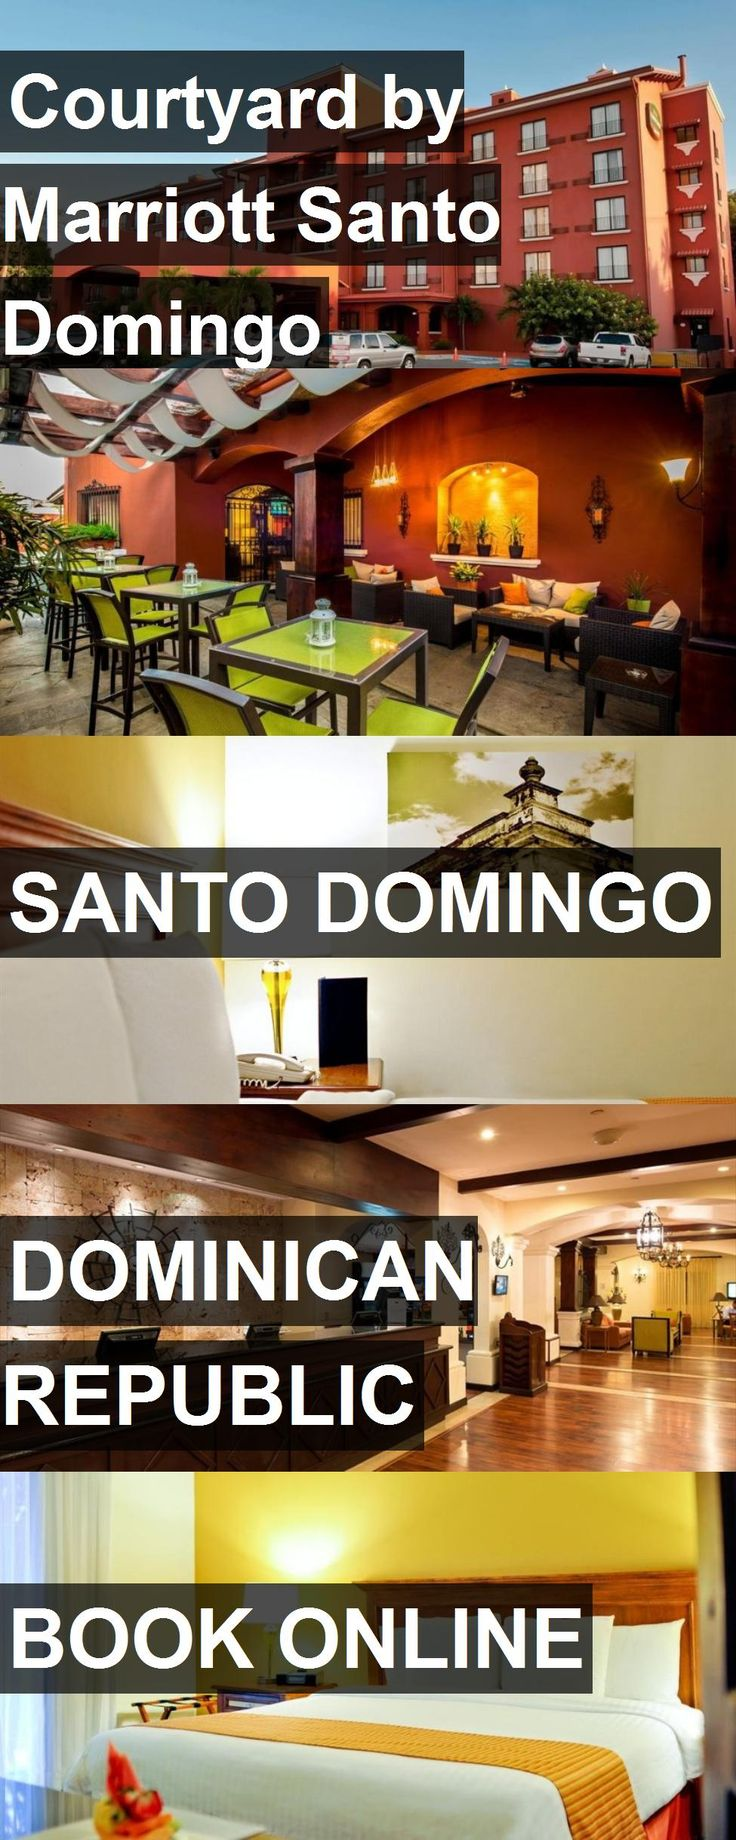 Hotel Courtyard by Marriott Santo Domingo in Santo Domingo, Dominican Republic. For more information, photos, reviews and best prices please follow the link. #DominicanRepublic #SantoDomingo #hotel #travel #vacation